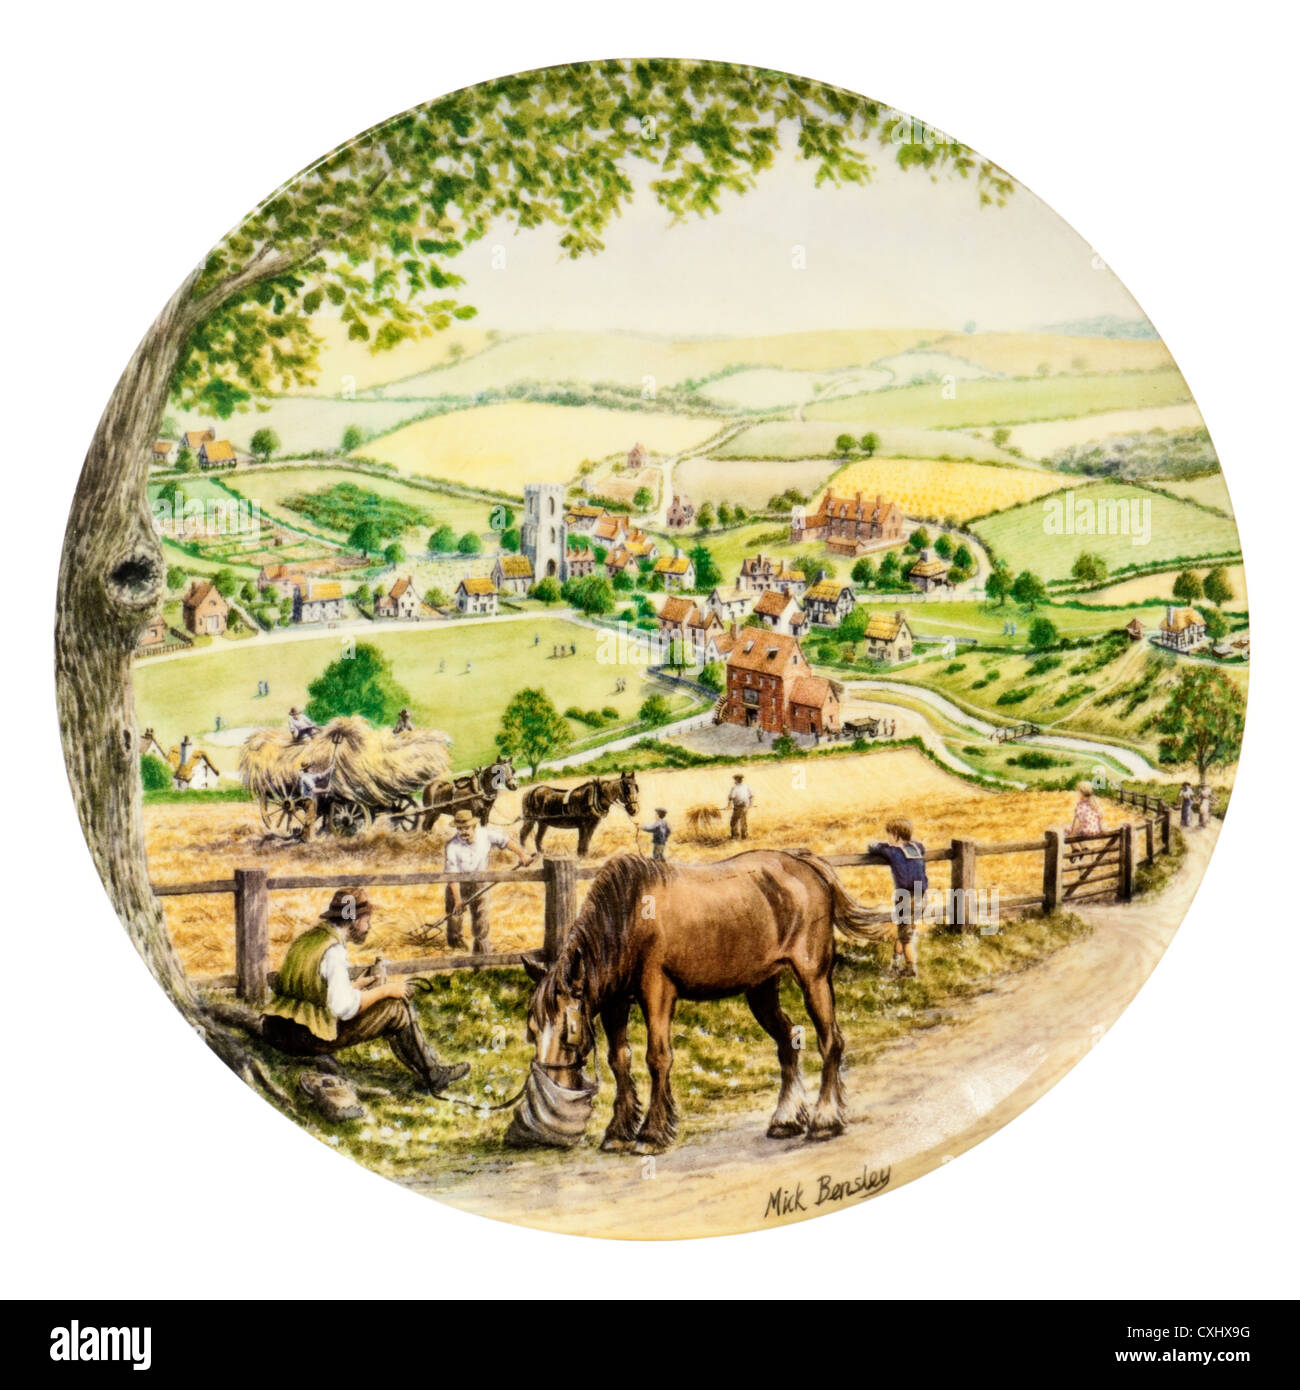 Royal Doulton porcelain collector plate - 'Milnsey Beck', special finale issue (9th) in the 'Journey - Stock Image